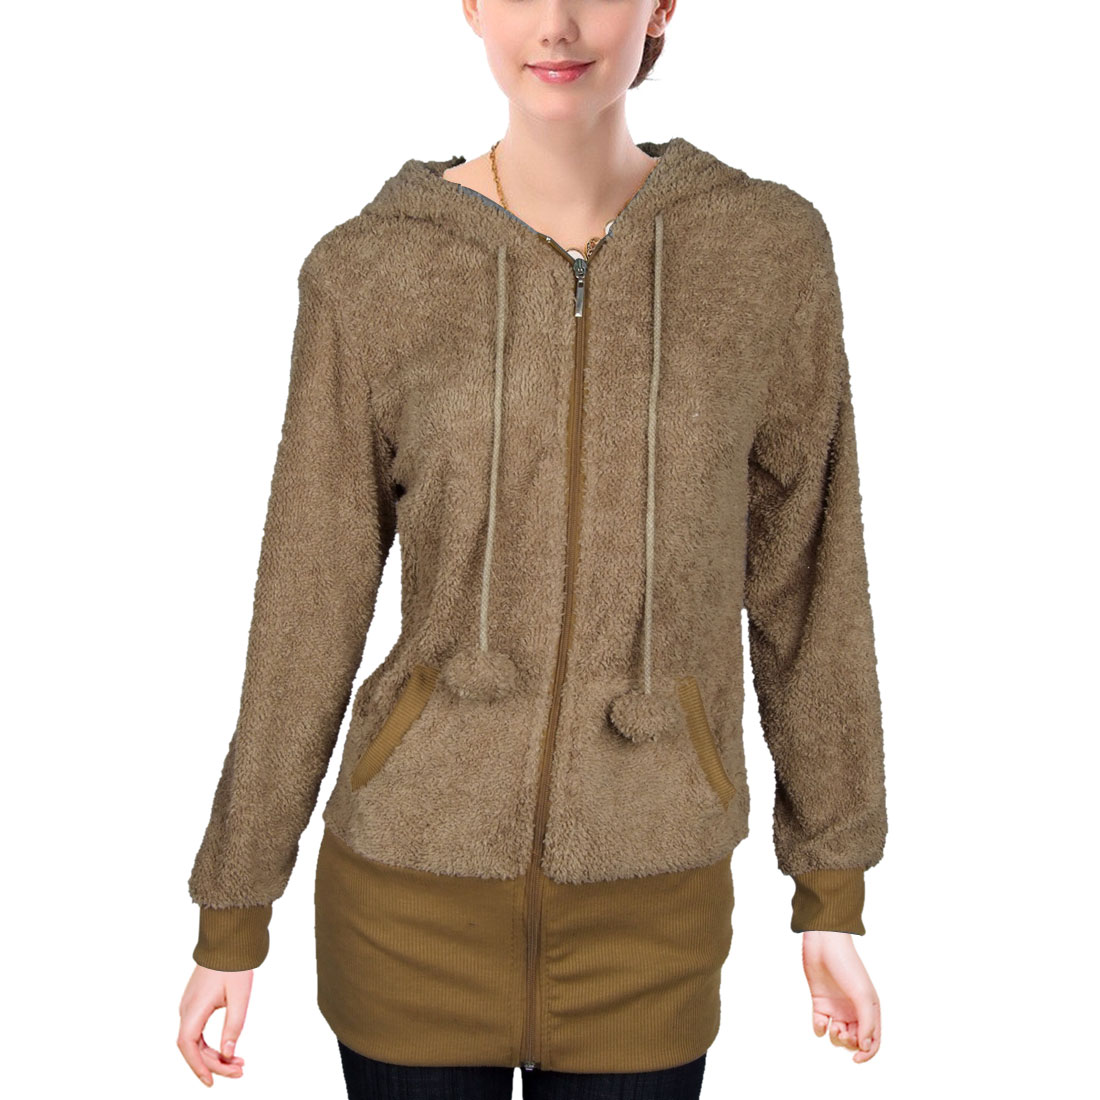 Size XS Brown Pom-pom String Stretched Cuff Rabbit Hooded Sweatshirt for Lady